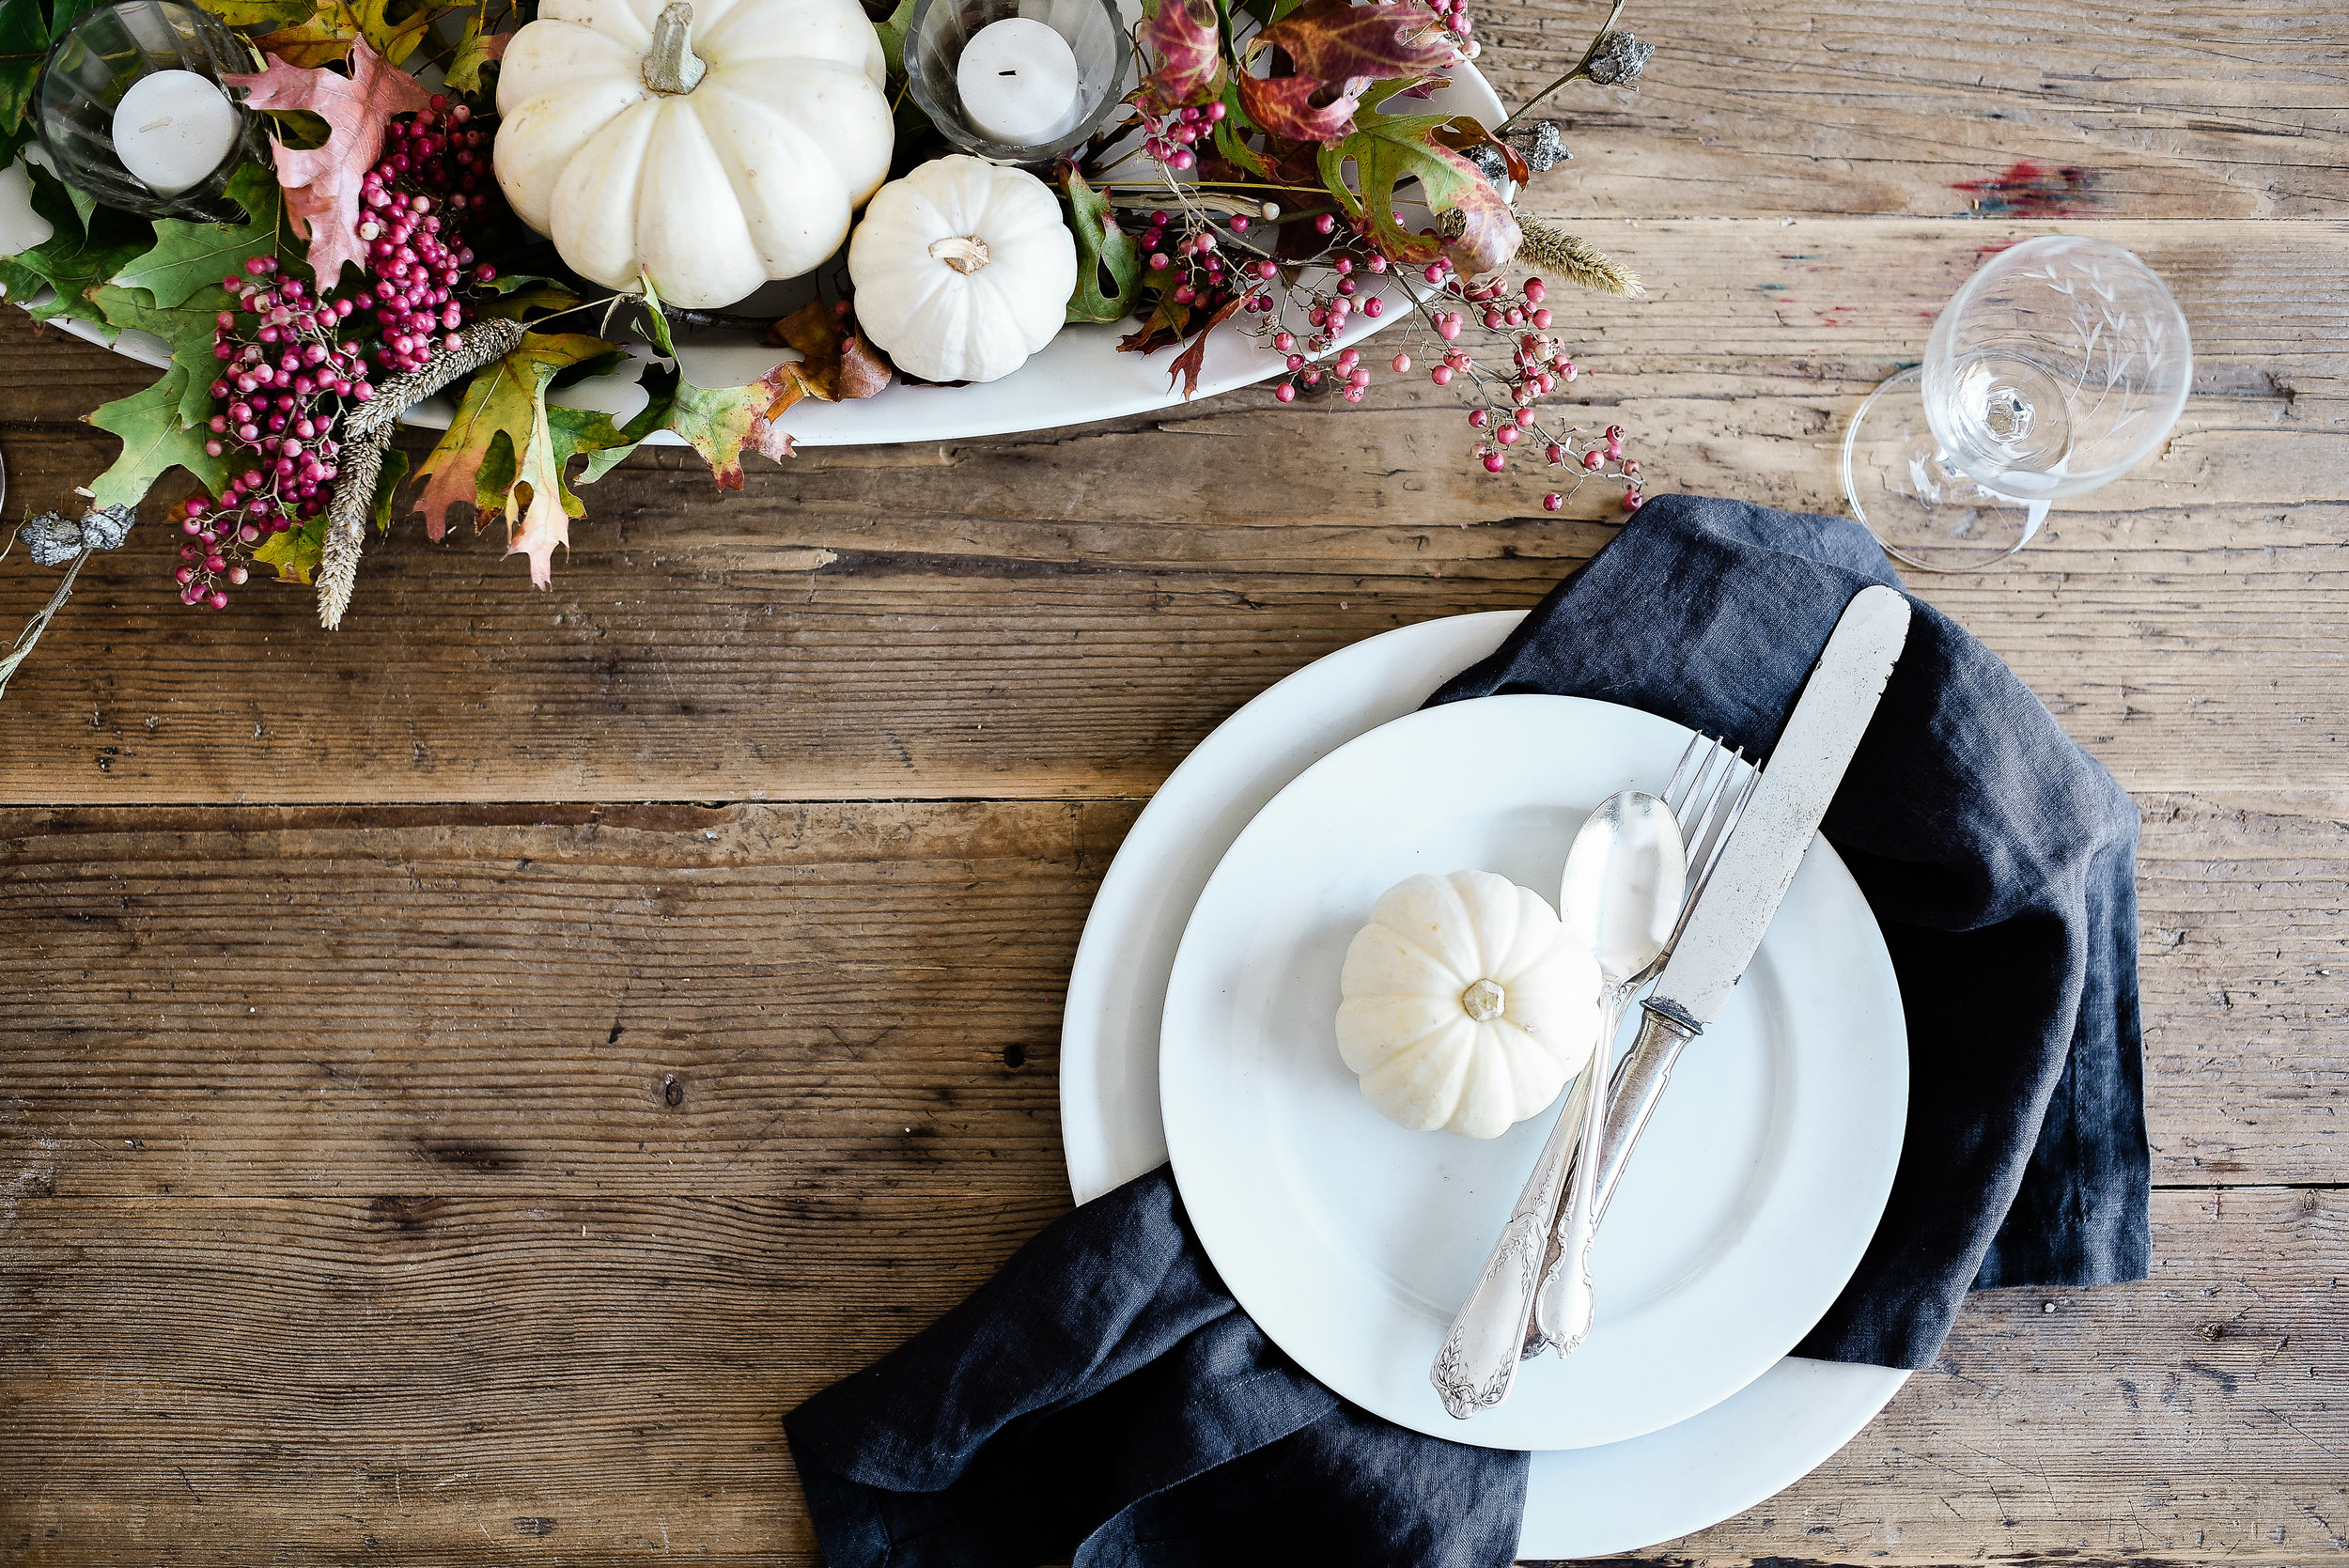 Vintage French inspired Thanksgiving tablescape from Boxwood Avenue #thanksgivingdecor #thanksgivingtablescape